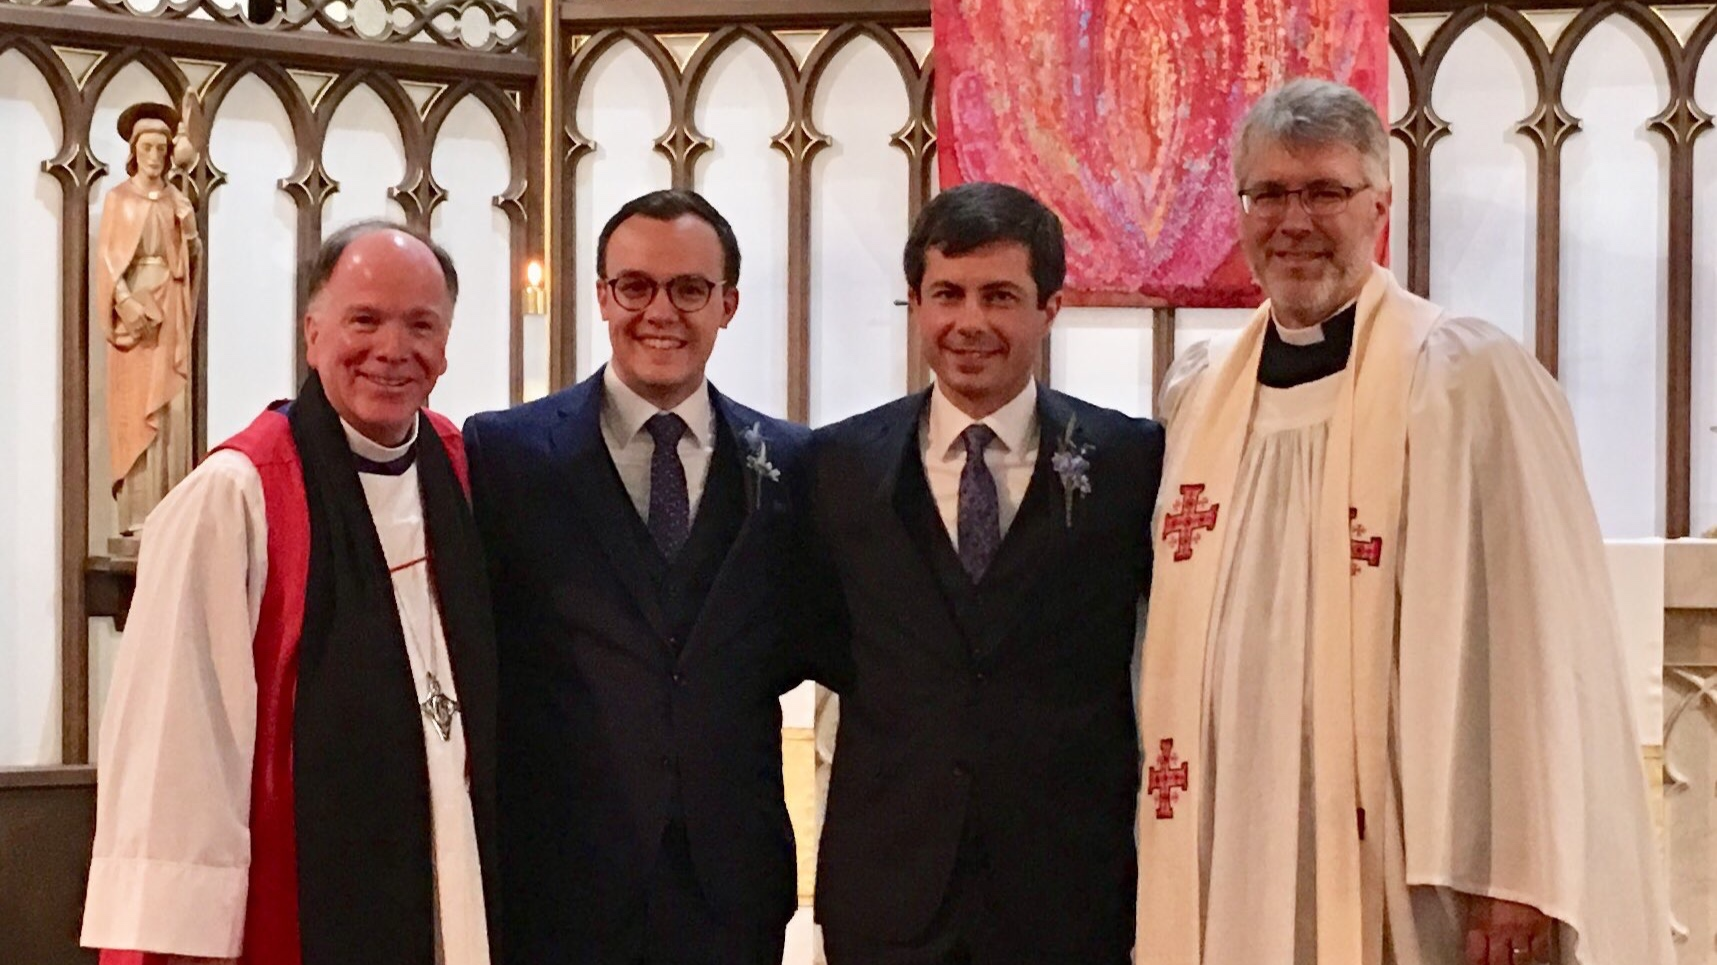 Diocesan Blog: Praying for Pete and Chasten Buttigieg